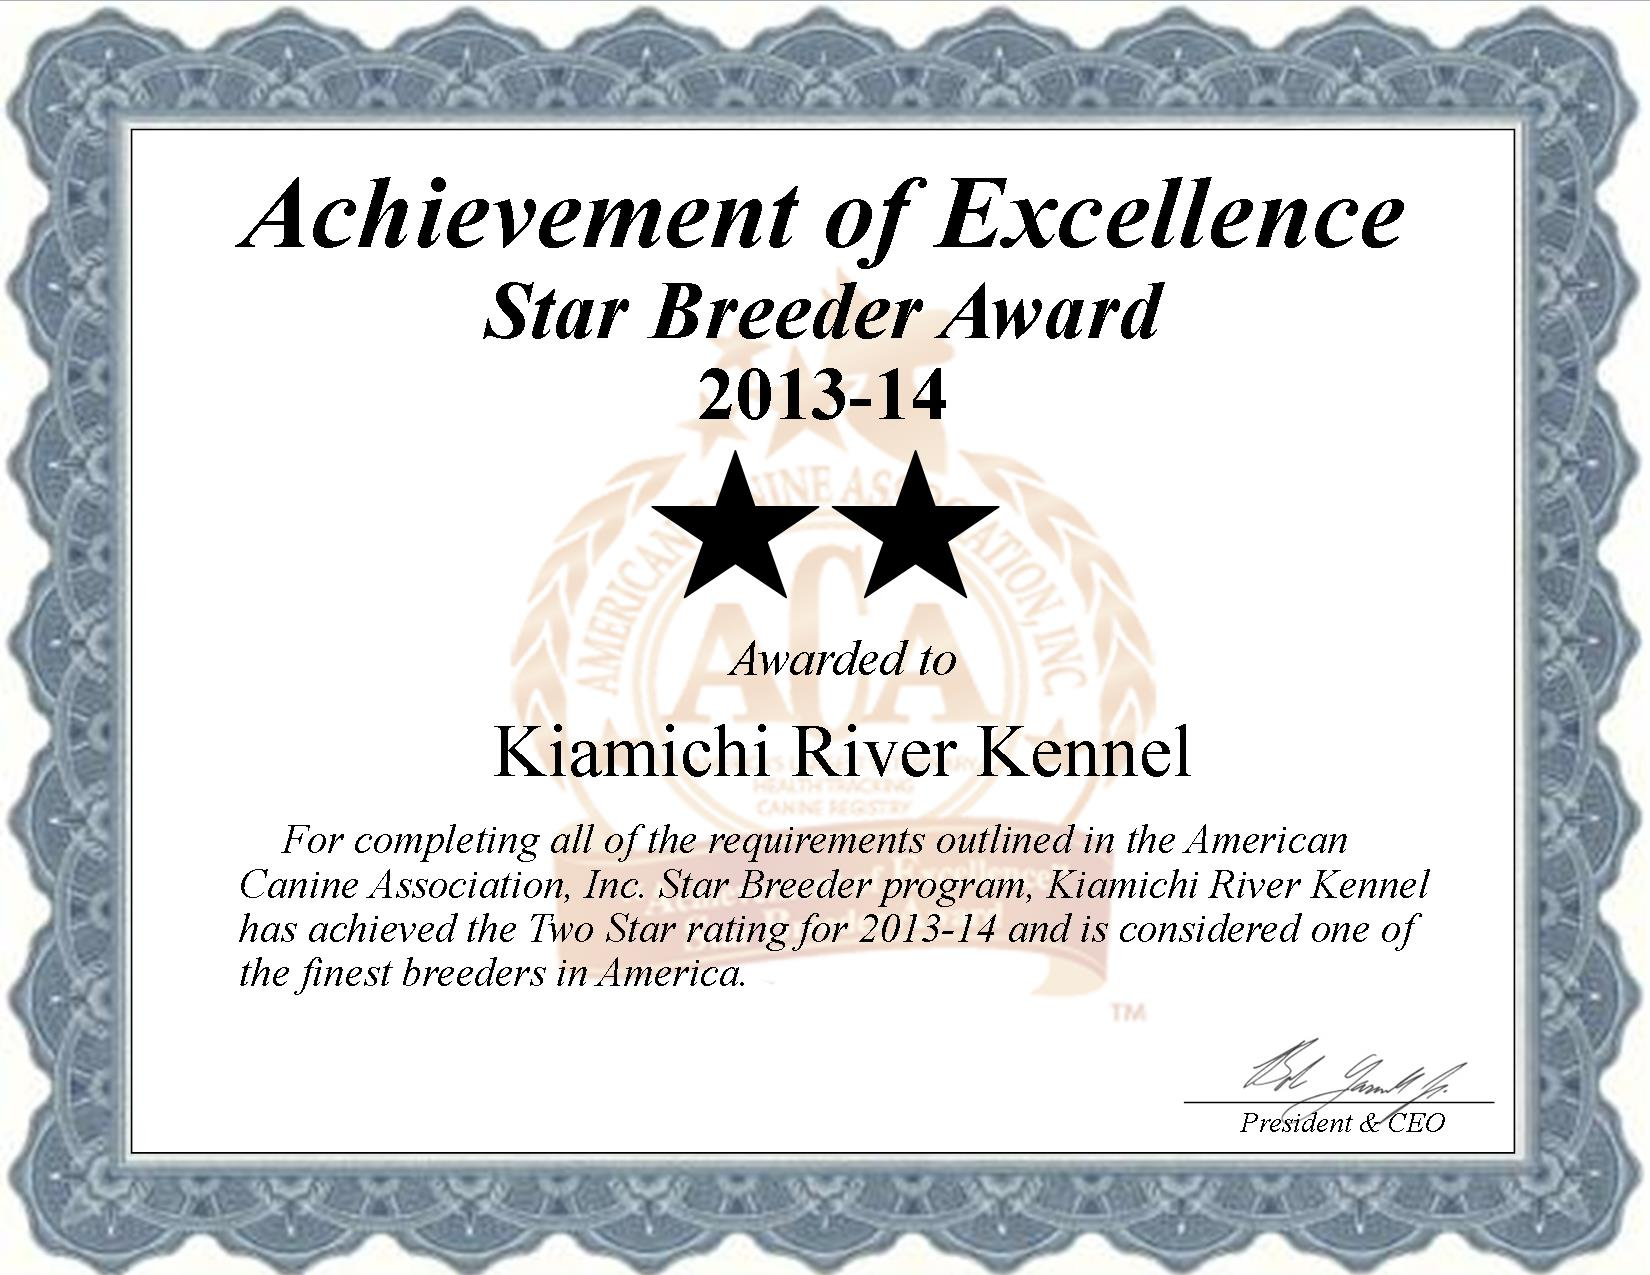 Kiamichi River, Kennel, Kiamichi River Kennel, Kennel, breeder, star breeder, aca, star breeder, 2 star, antlers, oklahoma, ok, dog, puppy, puppies, dog breeder, dog breeders, oklahoma breeder, Kiamichi River Kennel dog breeder